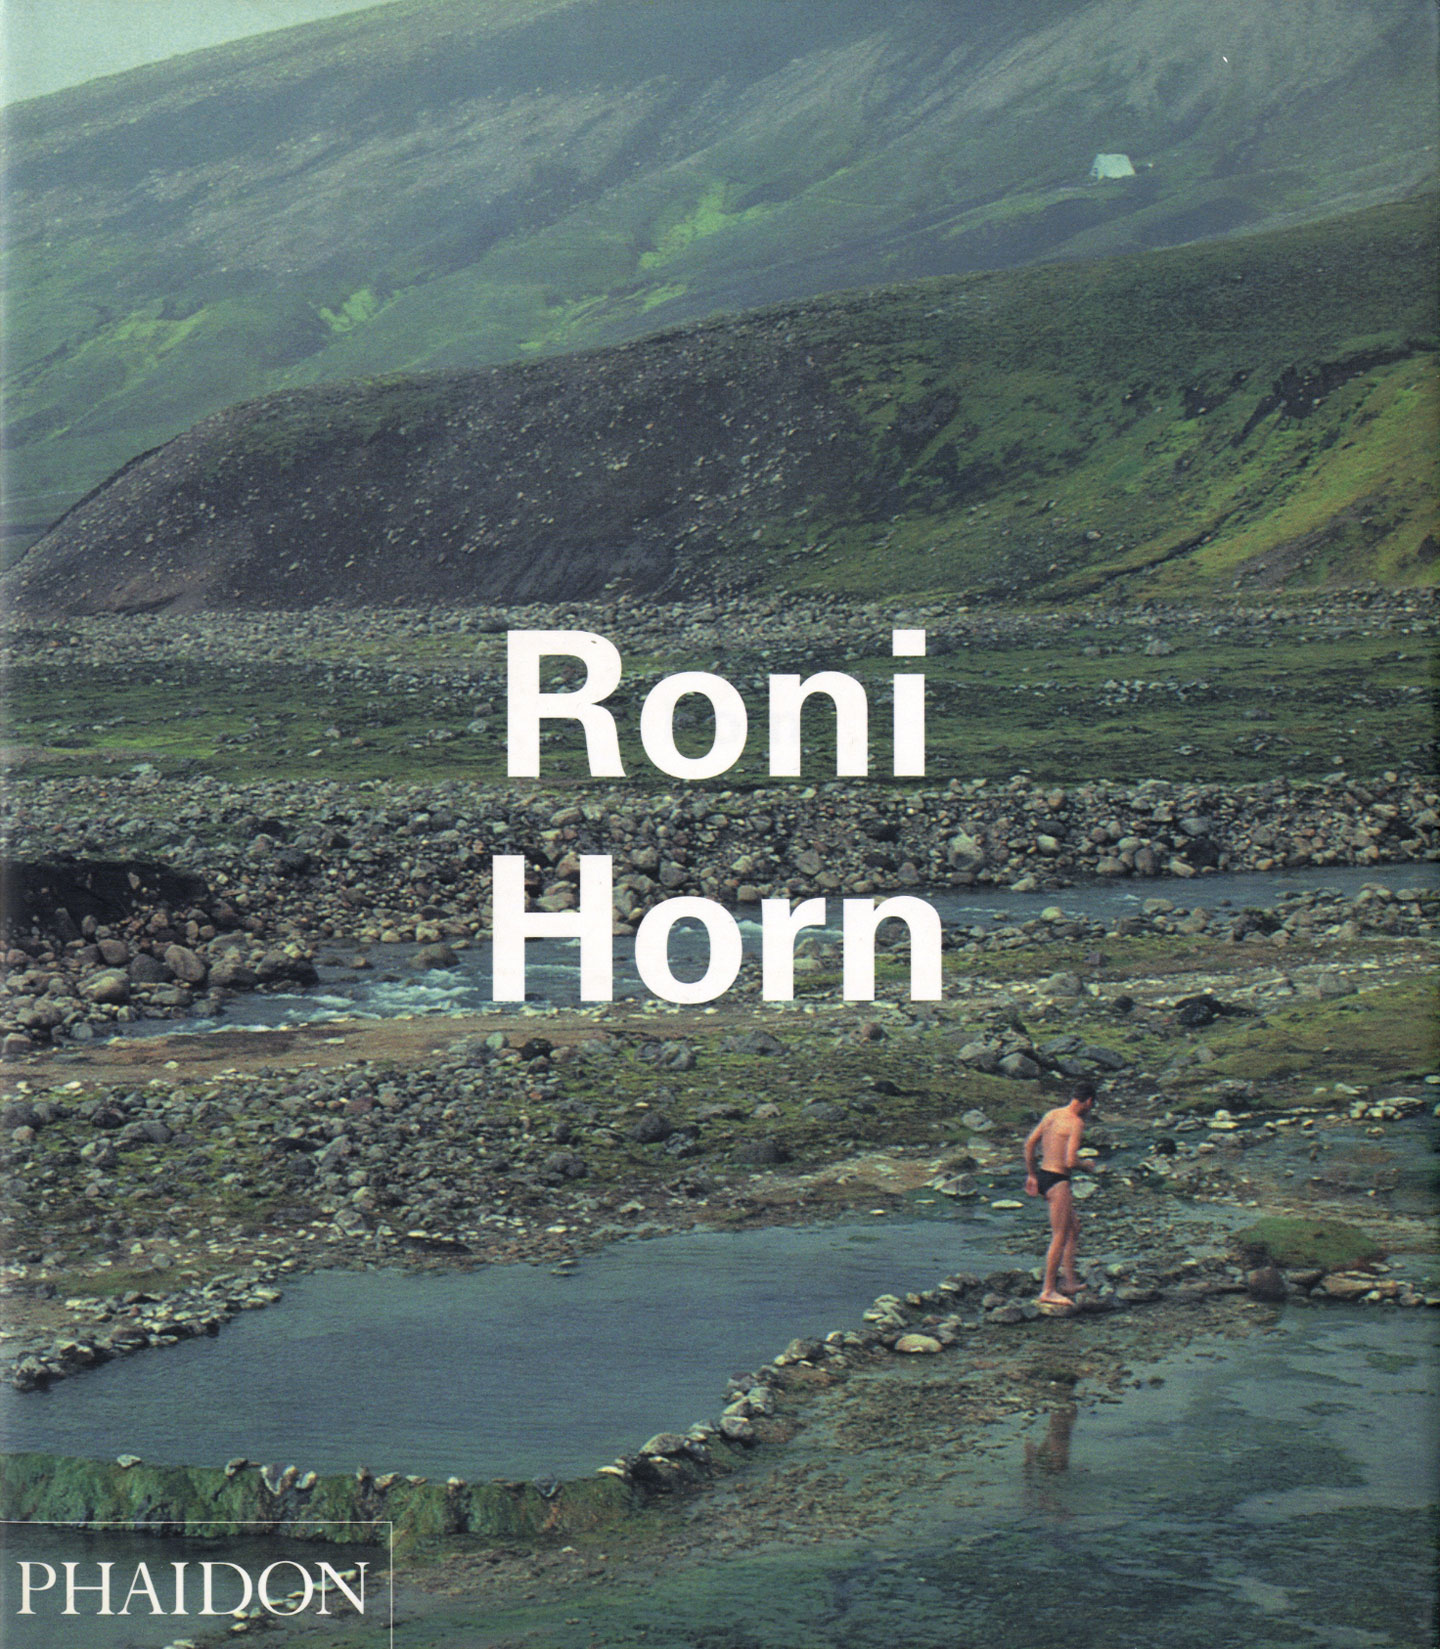 Roni Horn (Phaidon Contemporary Artists Series) [SIGNED]